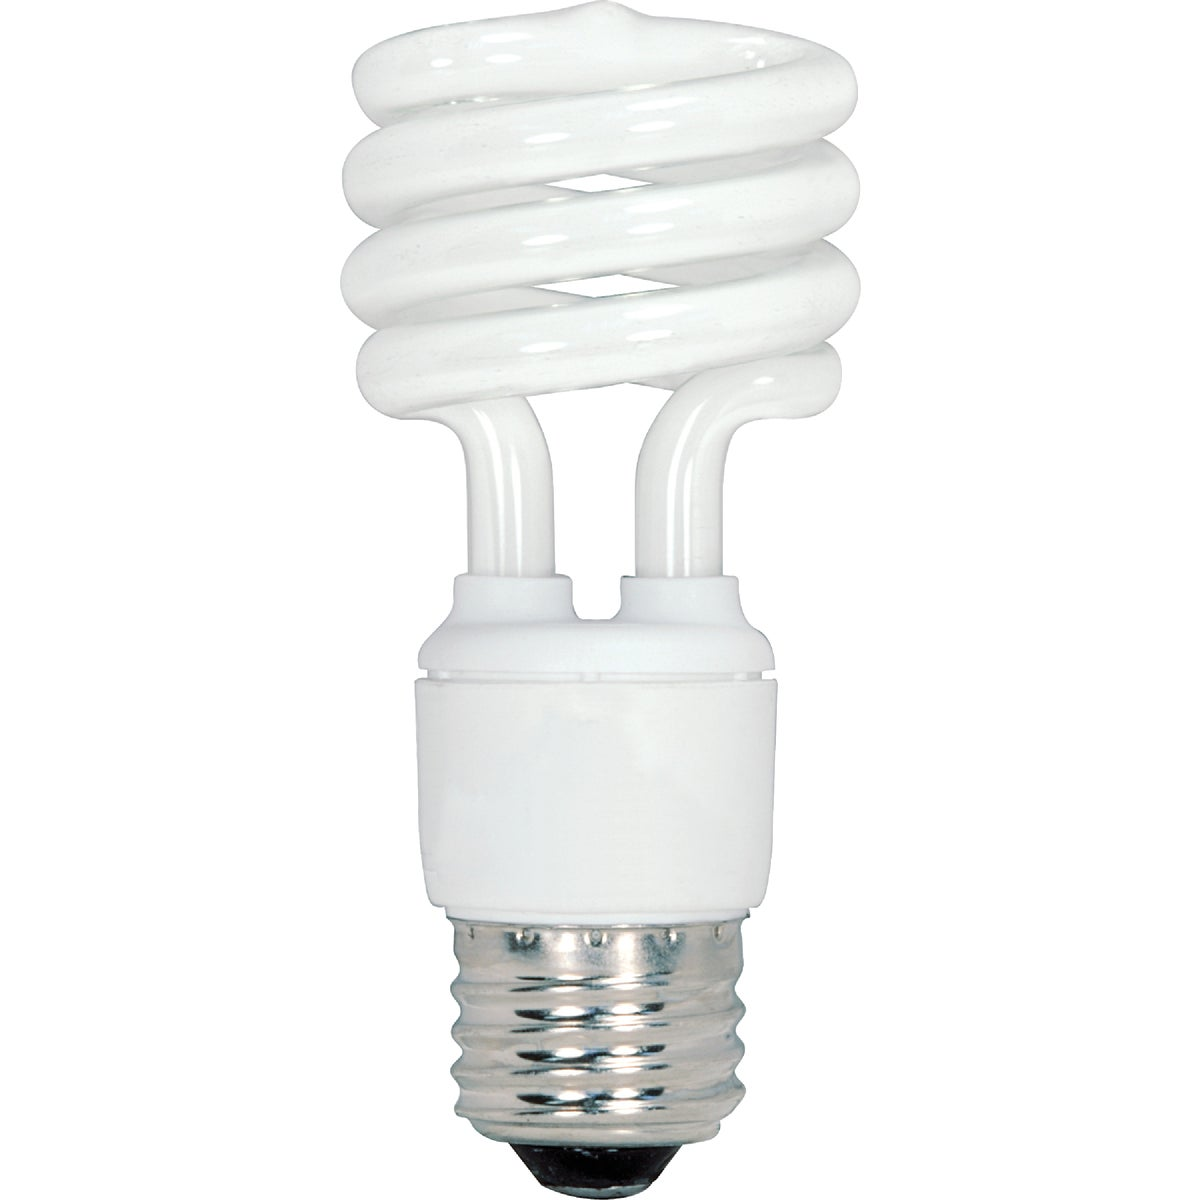 5PK 13W CFL BULB - 85939 FLE13HT3/2/SW/5PK by G E Lighting